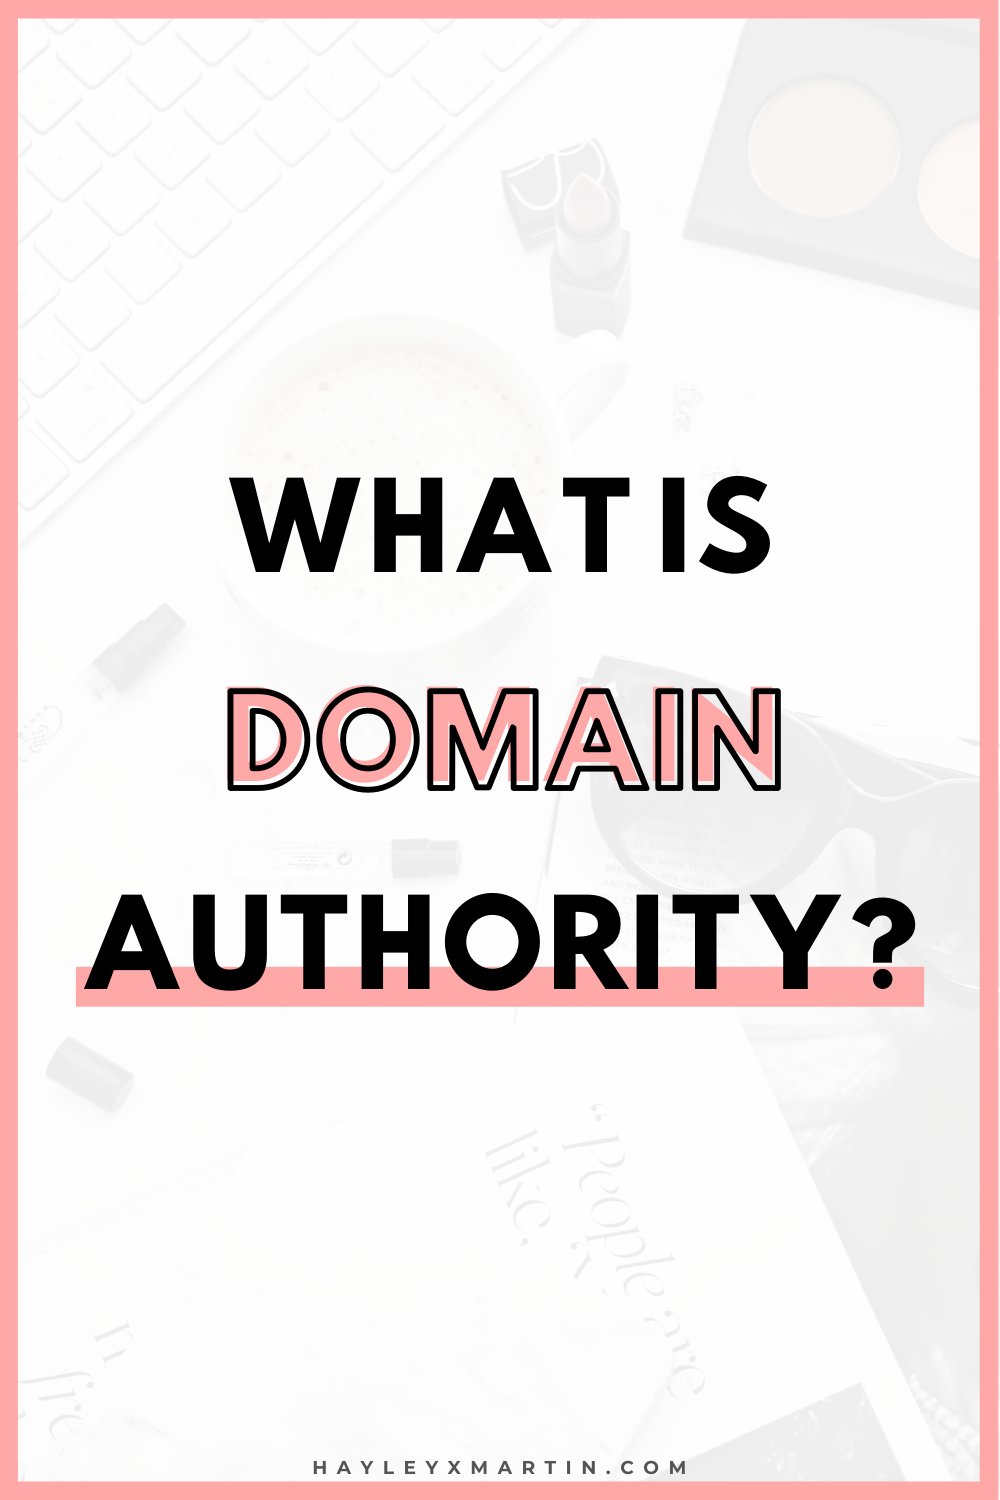 WHAT IS DOMAIN AUTHORITY | HAYLEYXMARTIN